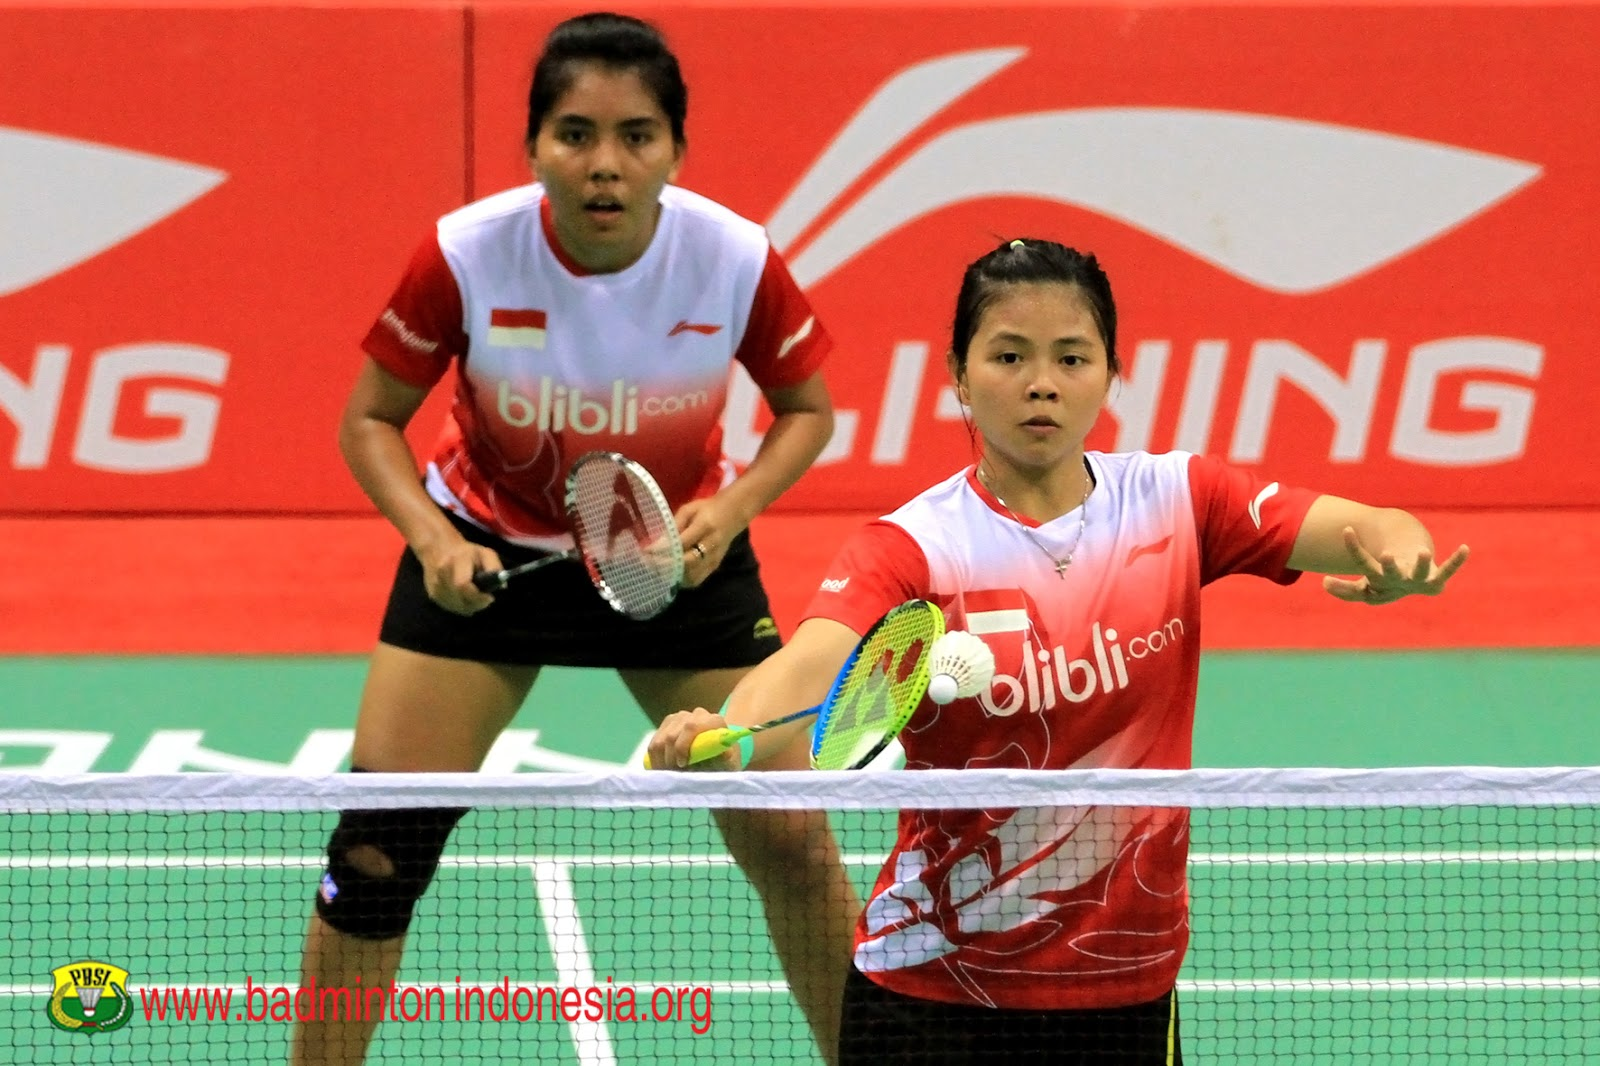 We Love Indonesia s Badminton November 2015